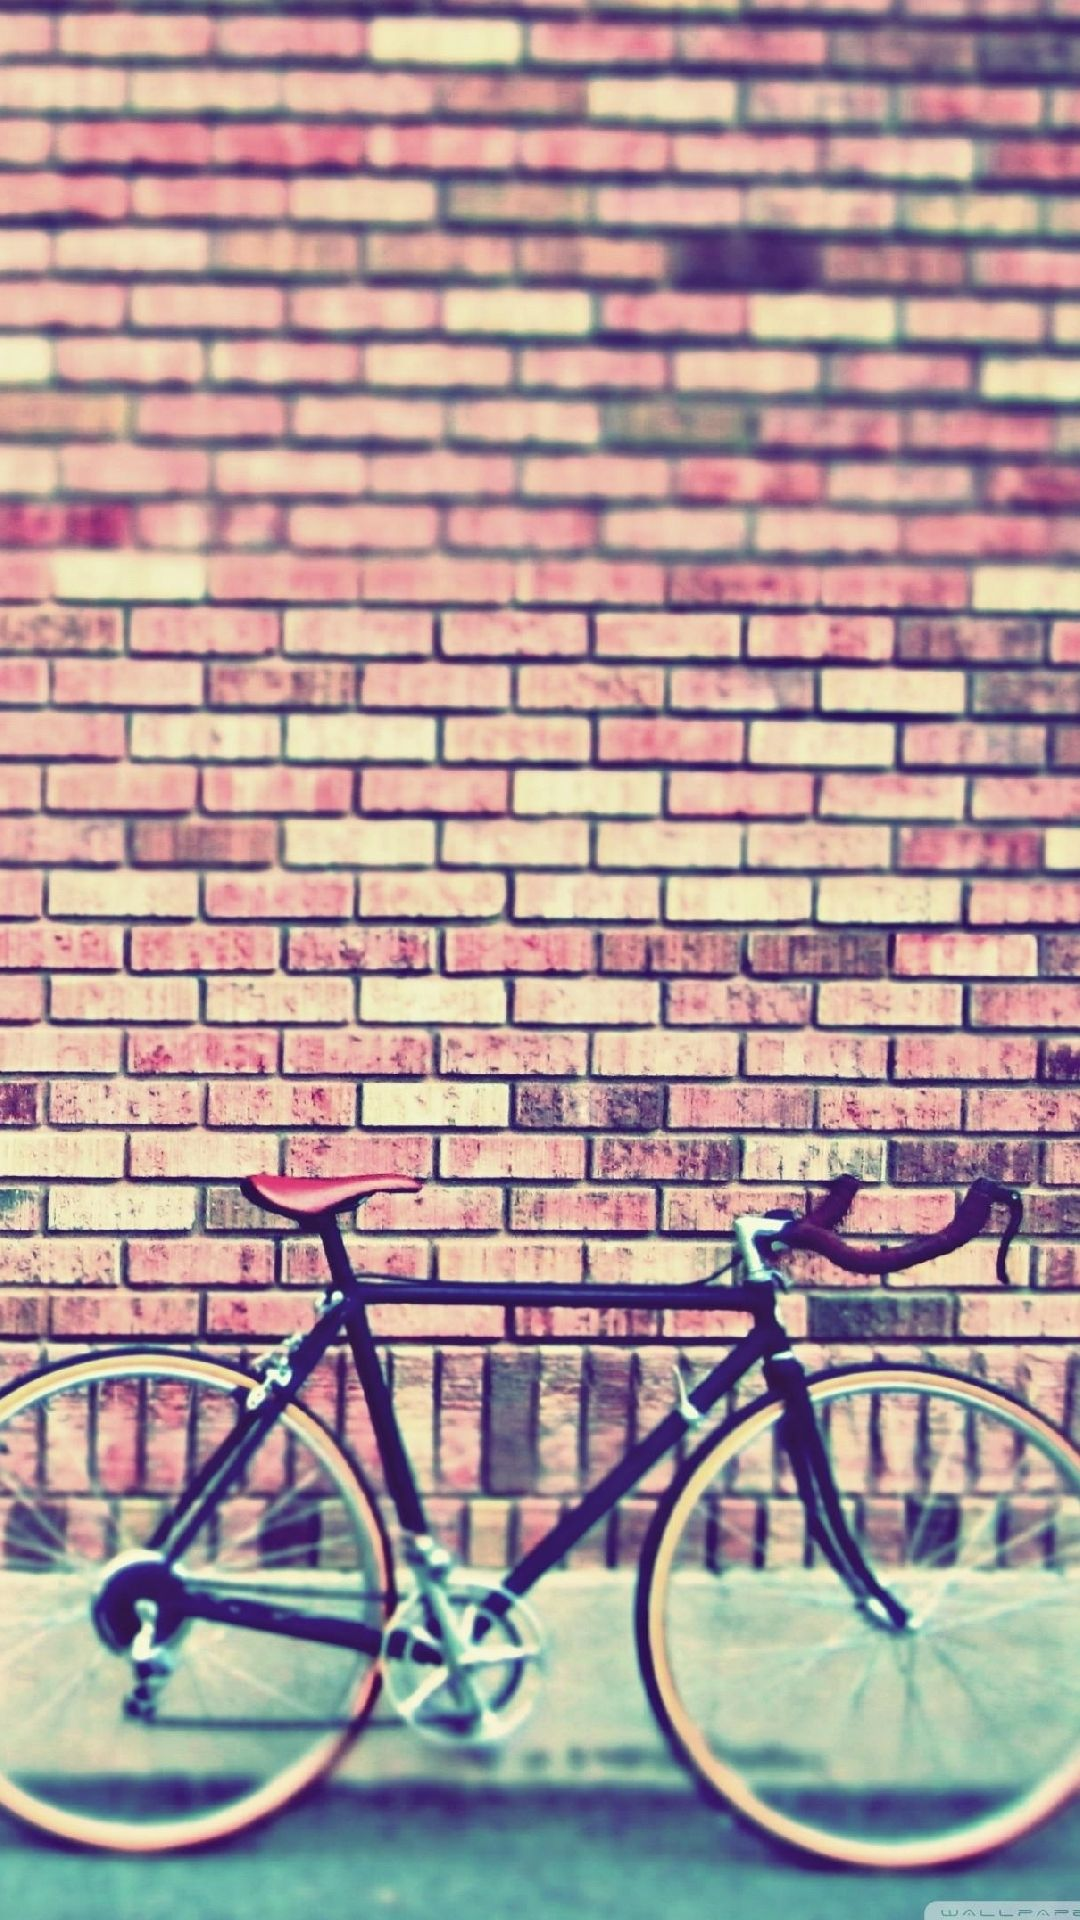 Vintage Bicycle Wallpaper Vintage bicycles Bicycling and Wallpaper